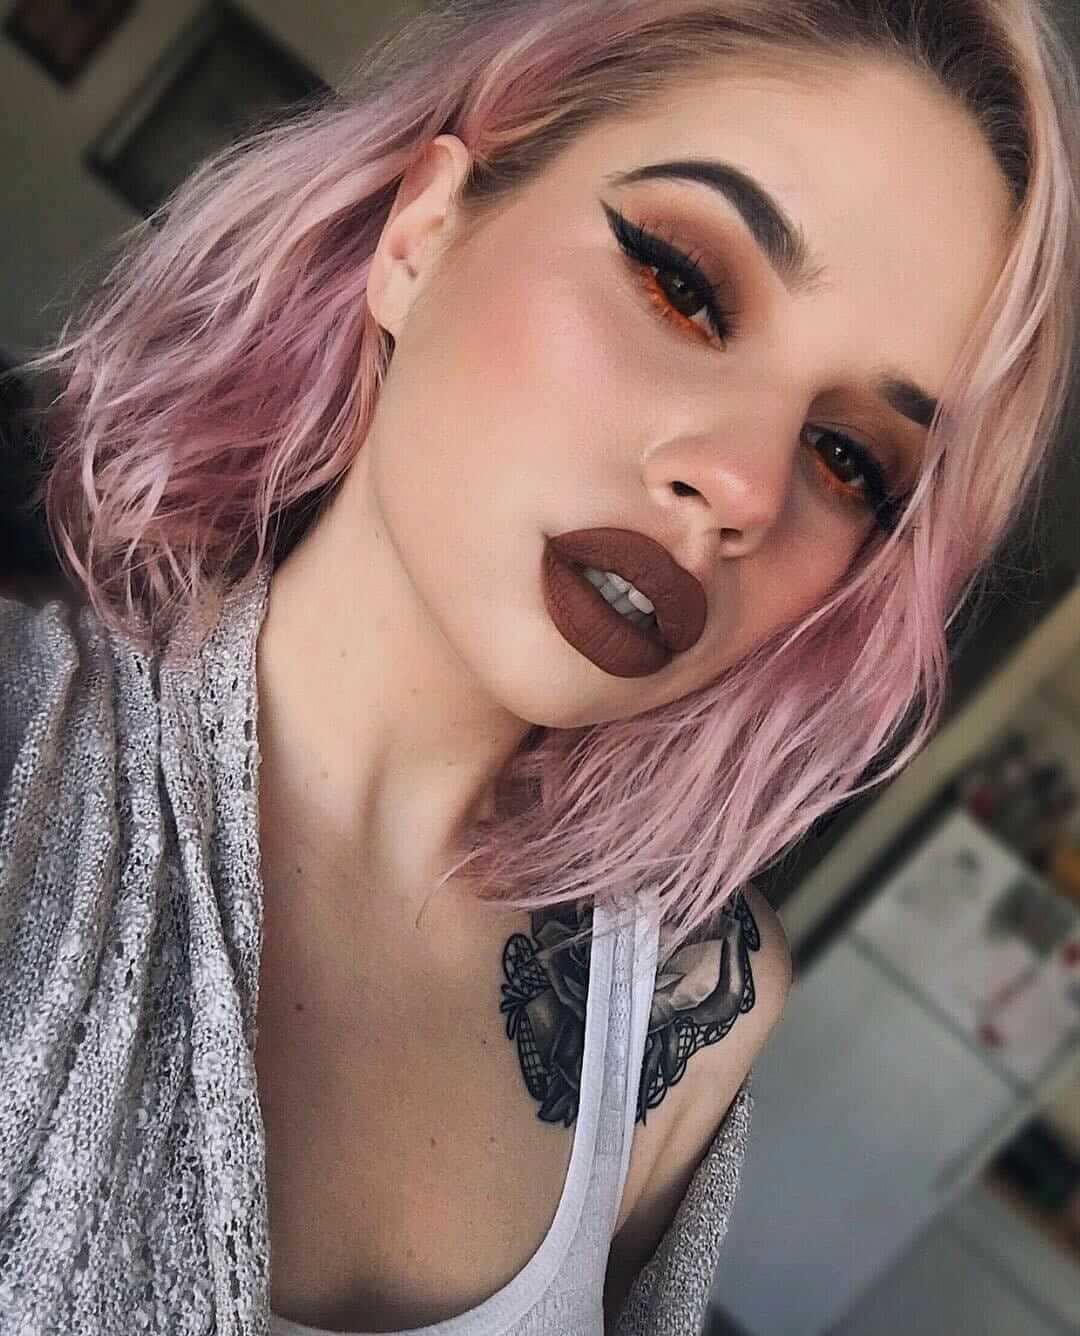 28 Pink Hair ideas you need to see - Page 7 of 28 - Ninja